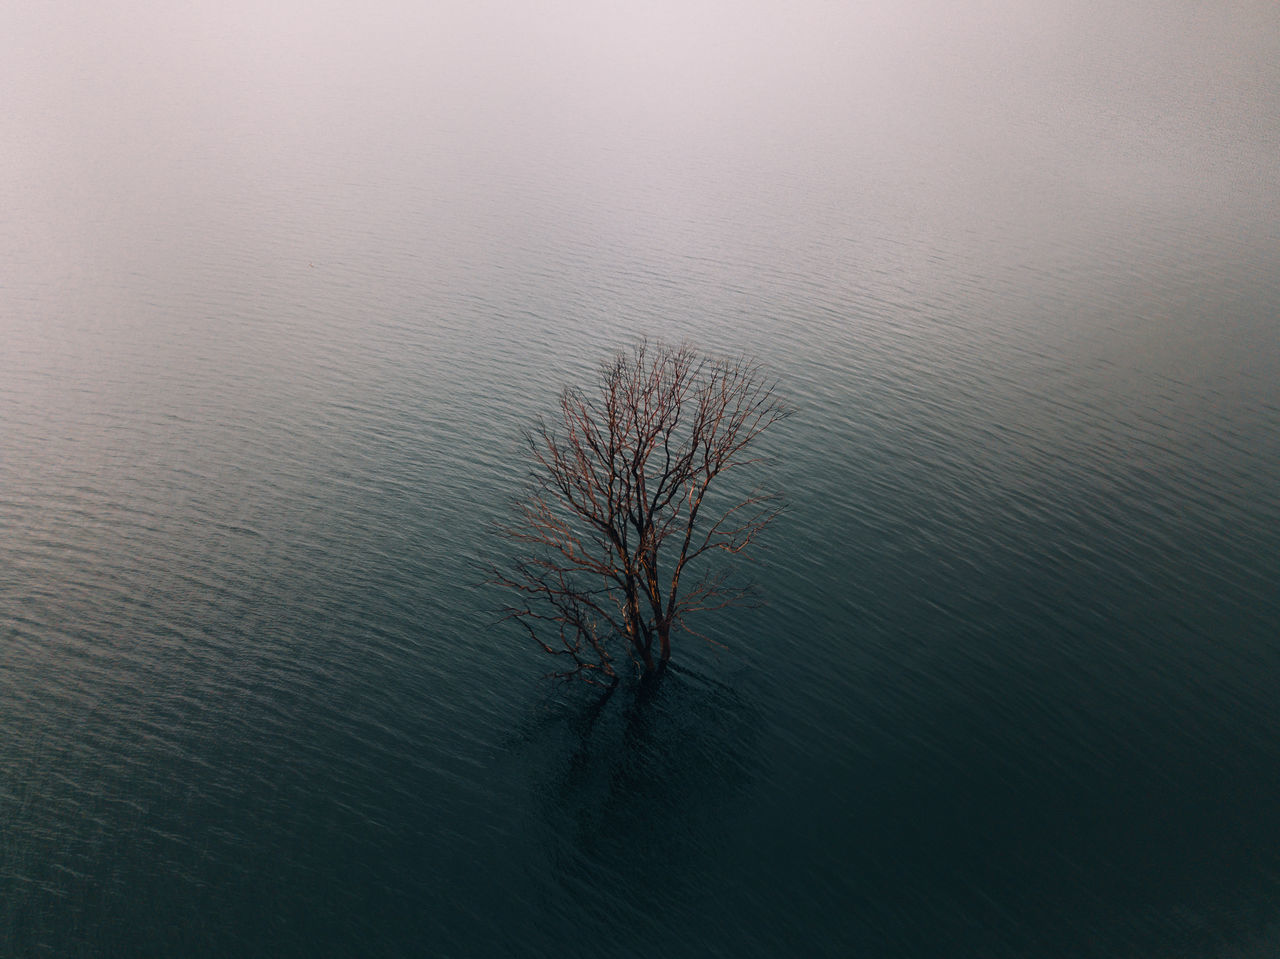 A lone tree sits in the waters of Chaffey Dam, Australia Australia DJI mavic pro Eye Em Nature Lover Lone Tree Red bare tree beauty in Nature branch day eye em best shots Isolated landscape lone mavic pro Nature no people outdoors scenics tranquil scene Tranquility Tree week on eyeem